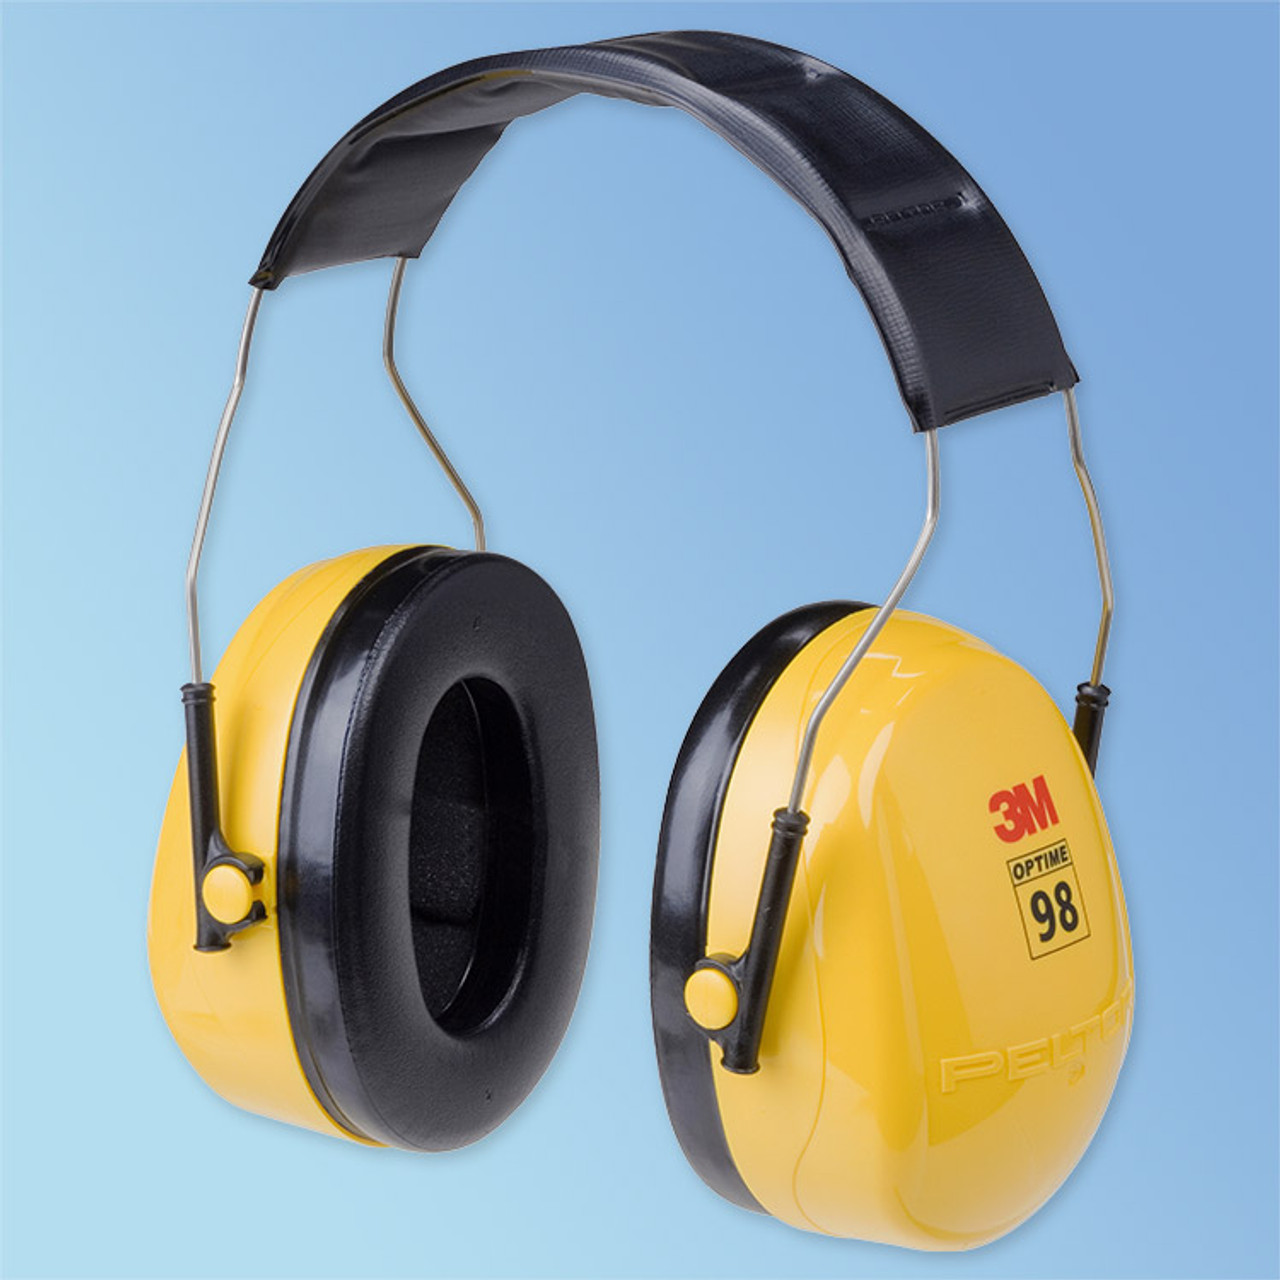 3M H9A Ear Muff,25dB,Over-the-Head,Yellow